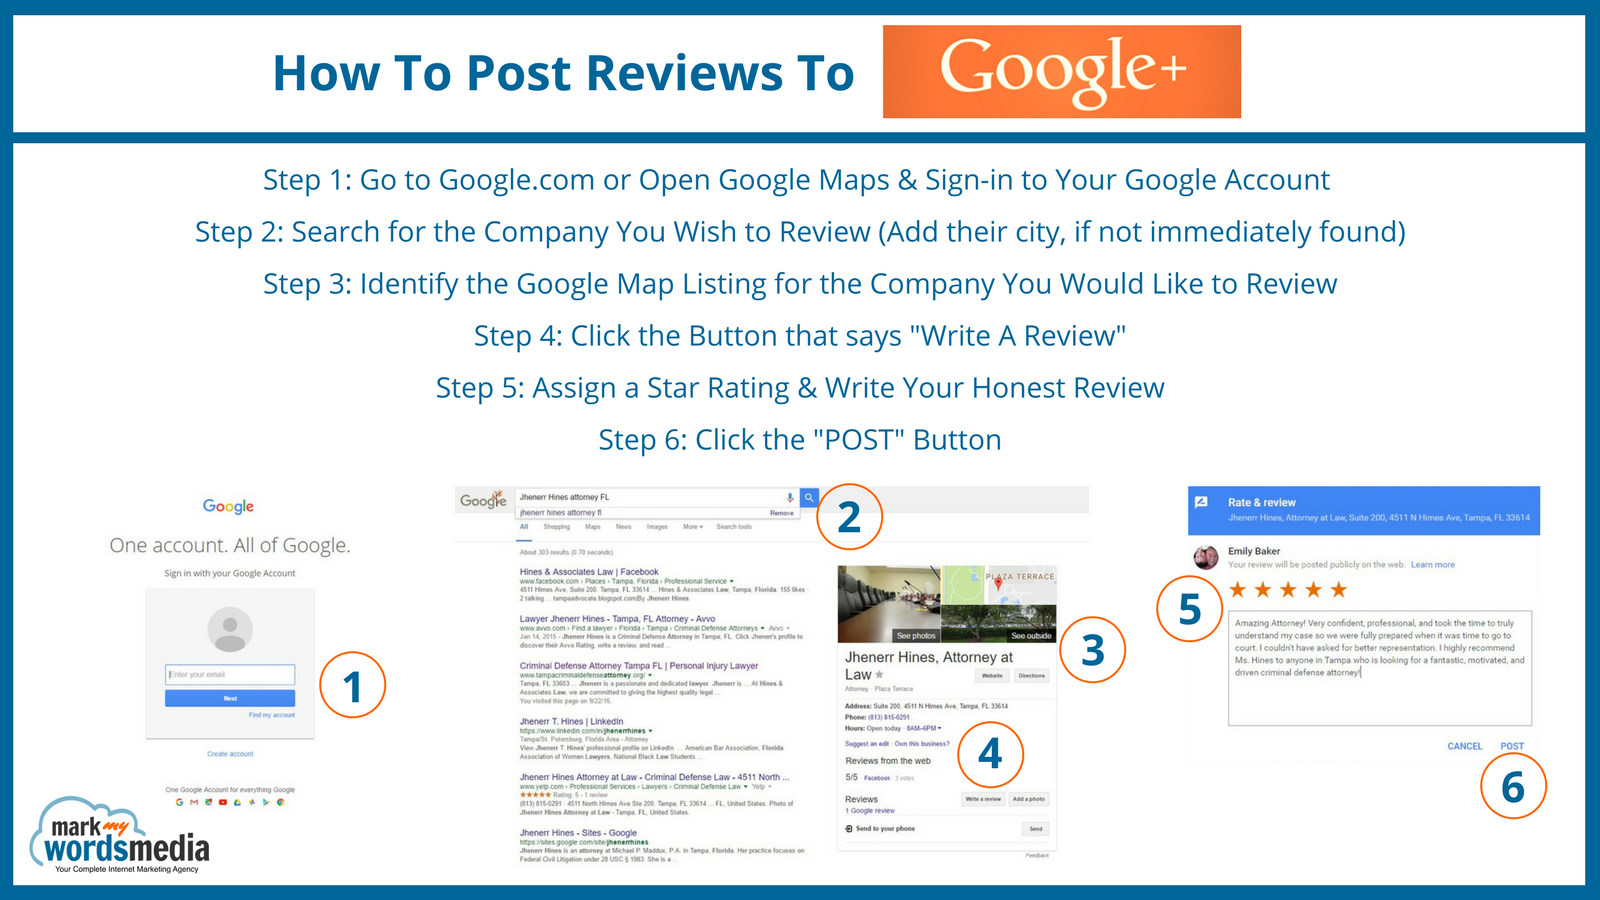 Get more Google Reviews for your Company